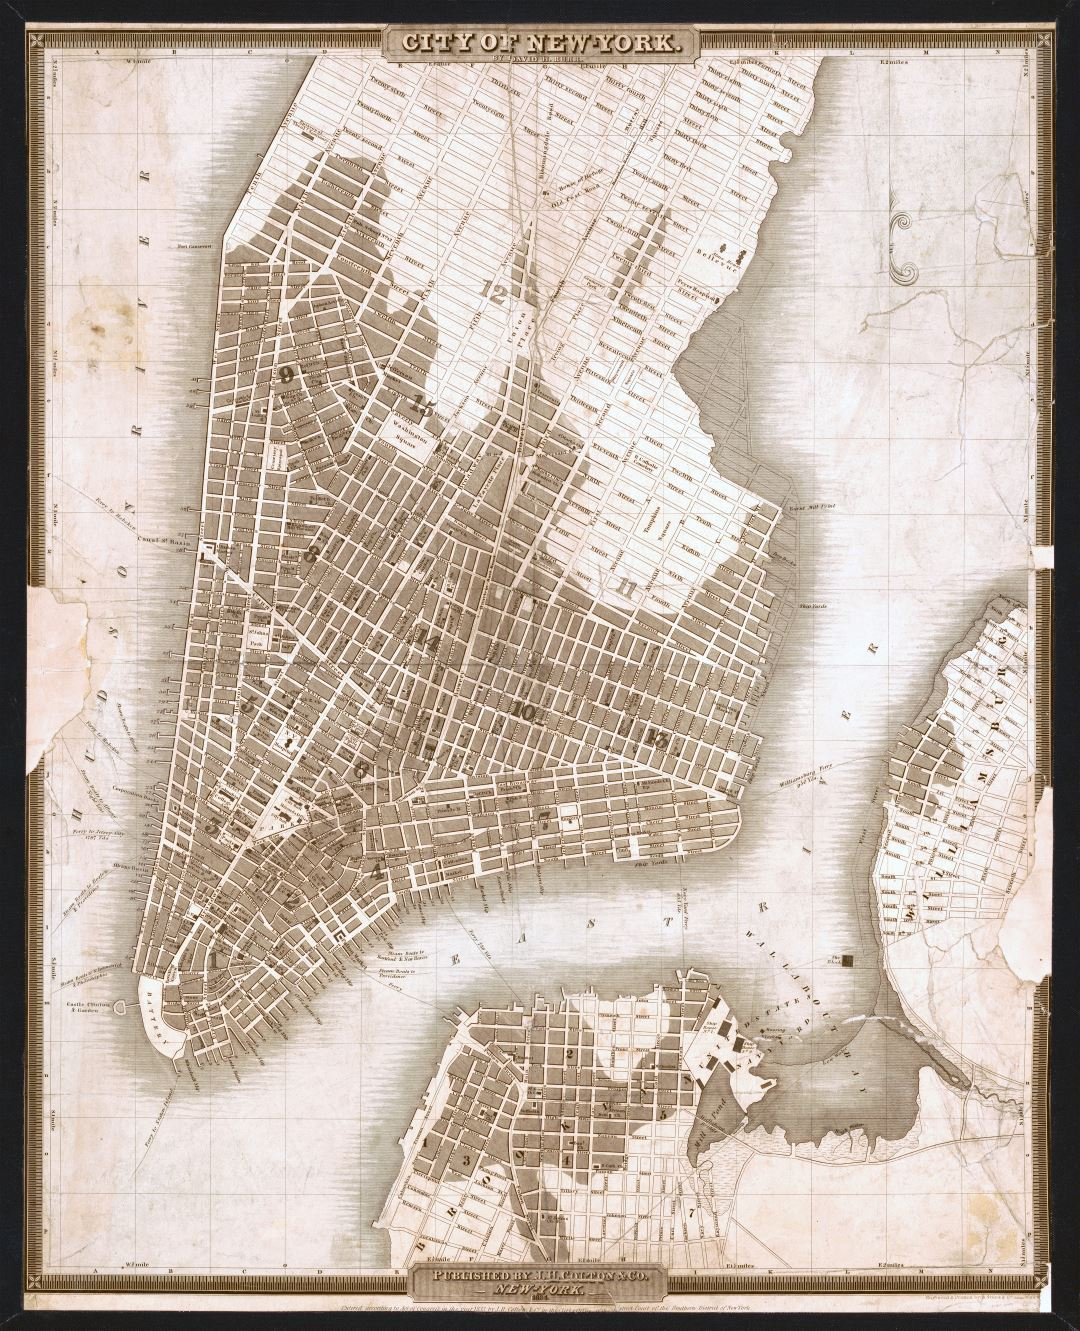 Large scale old map of city of New York - 1834